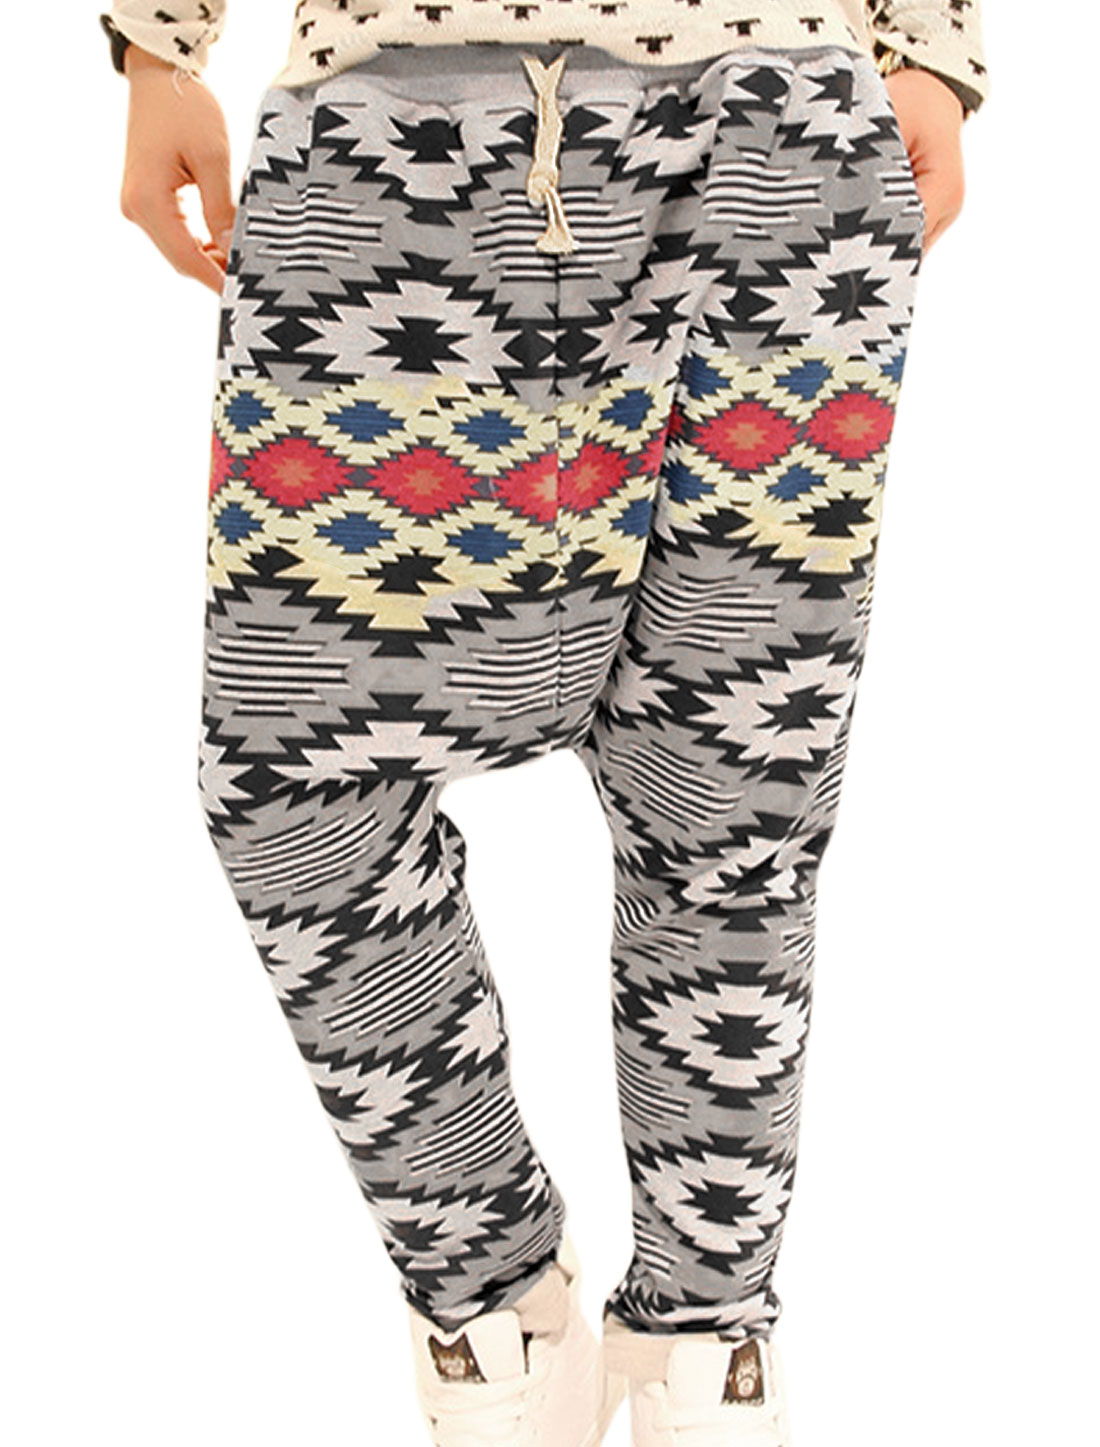 Men Elastic Waist Geometric Prints Multicolor Harem Pants W27